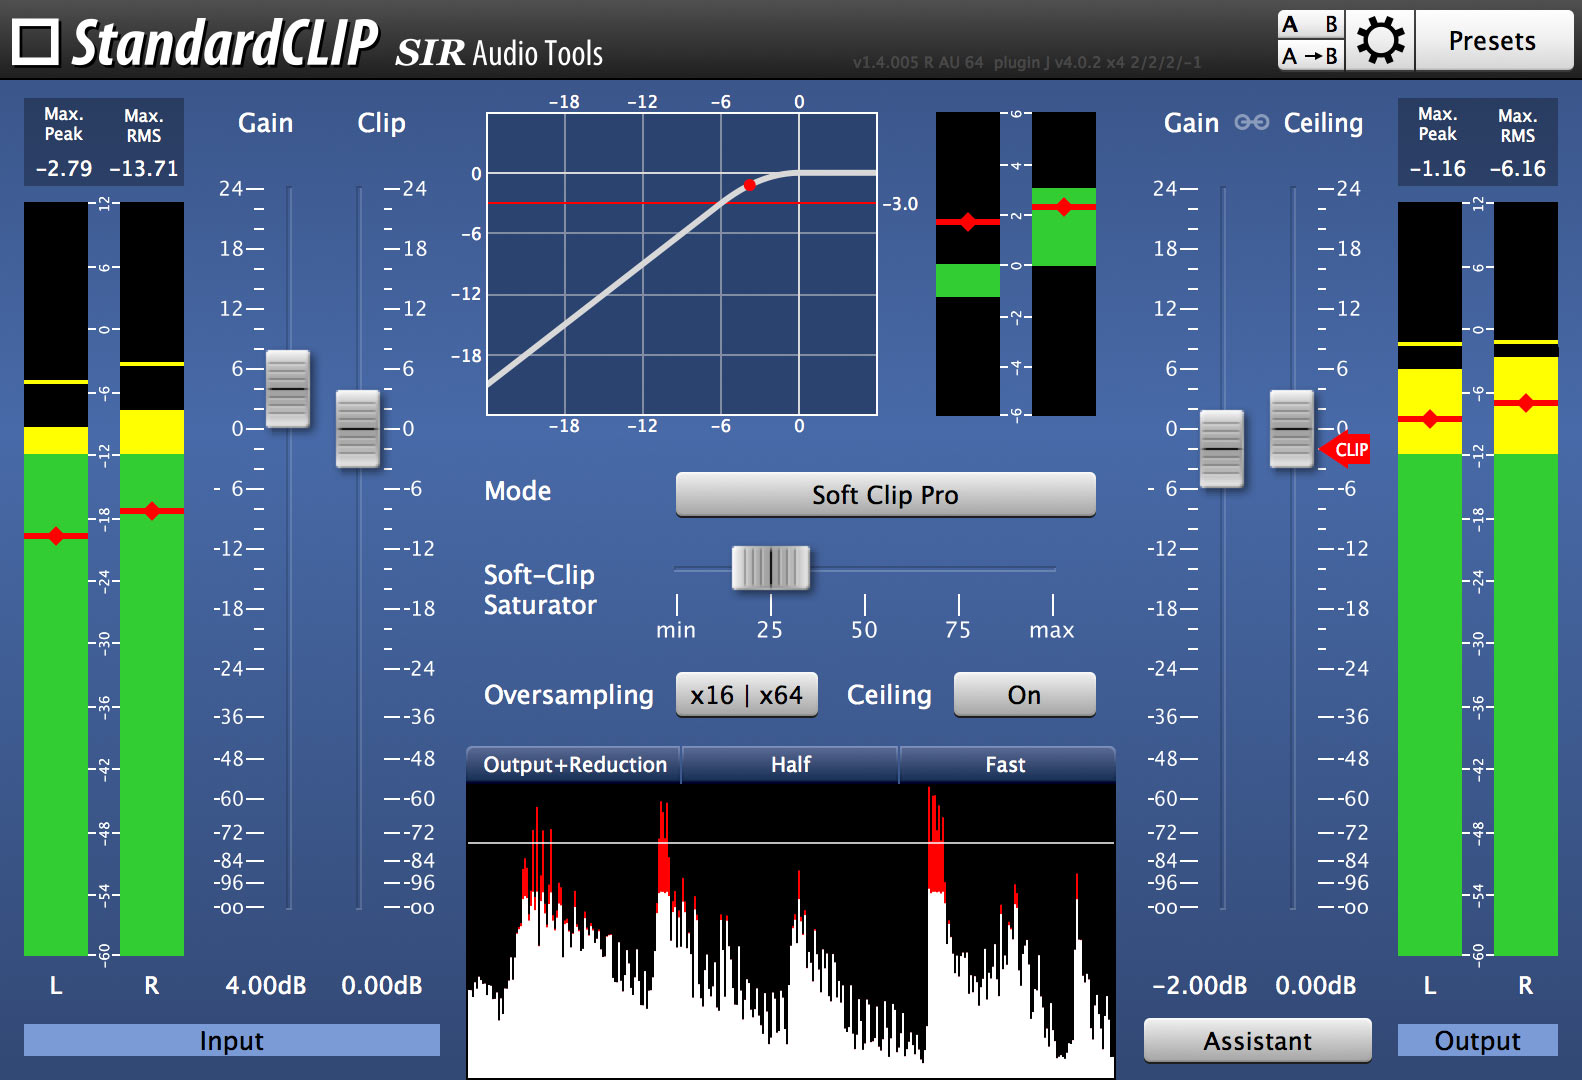 StandardCLIP | Details | SIR Audio Tools